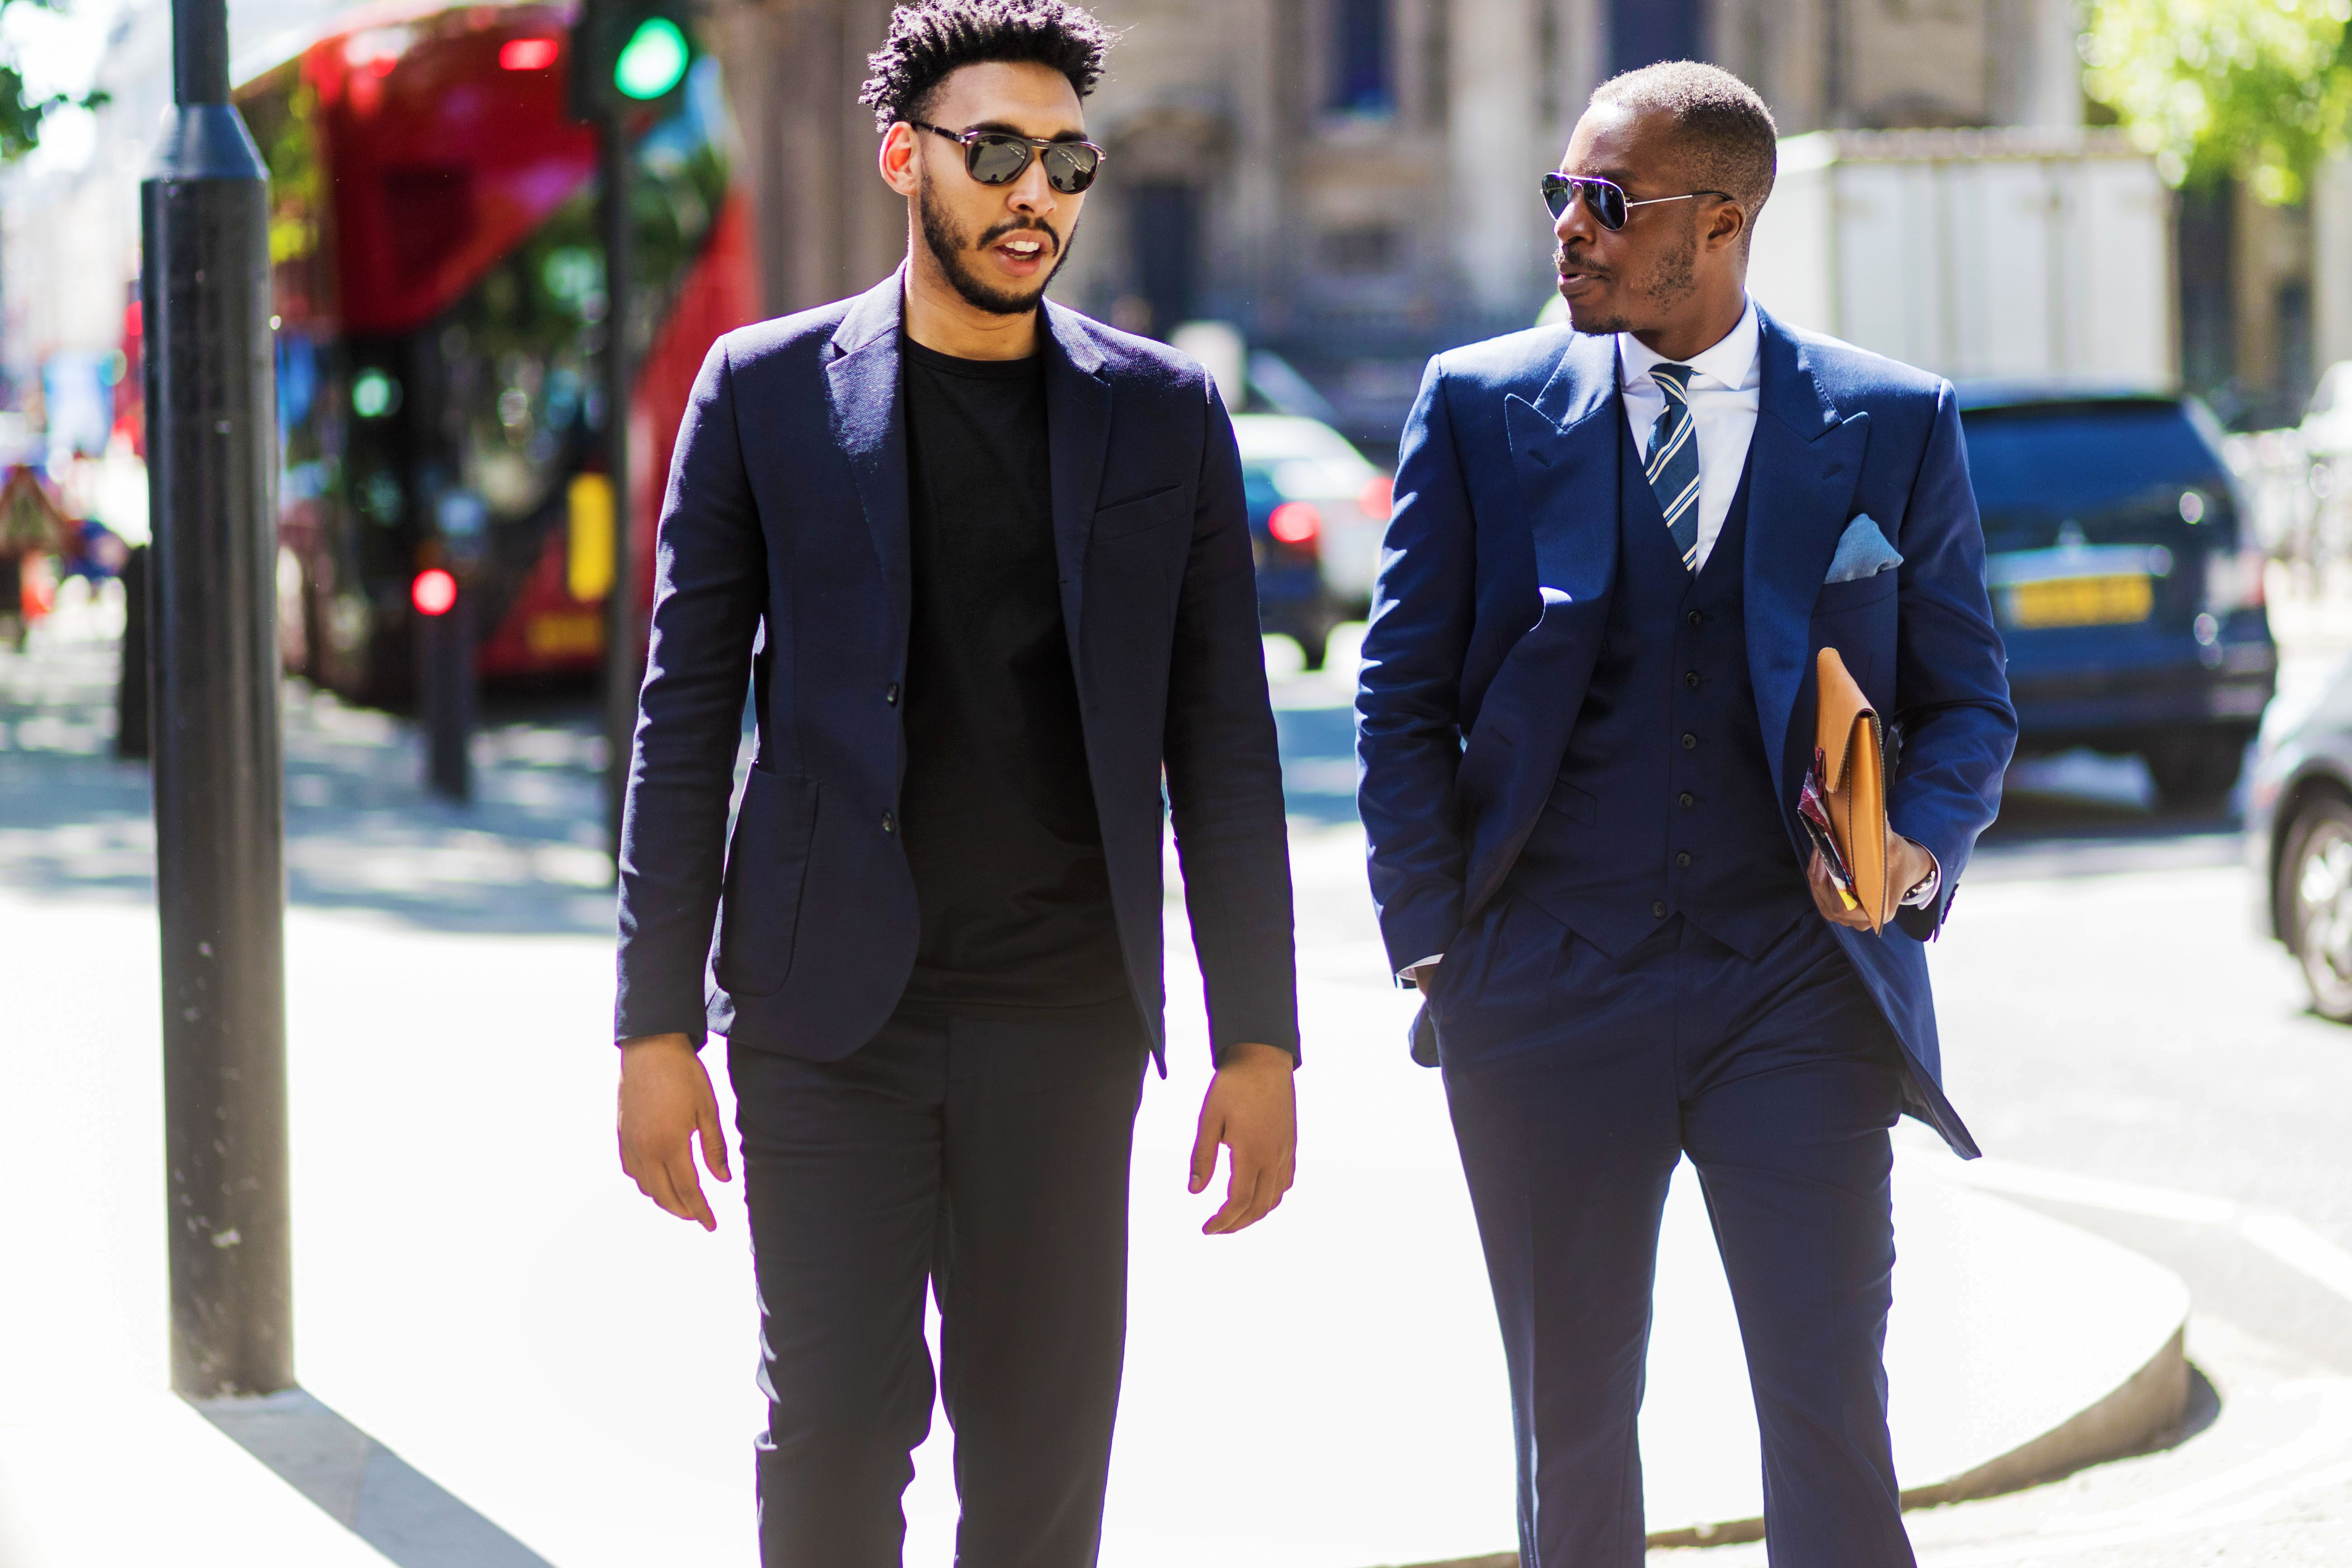 10 Small Style Changes That Make a Big Difference